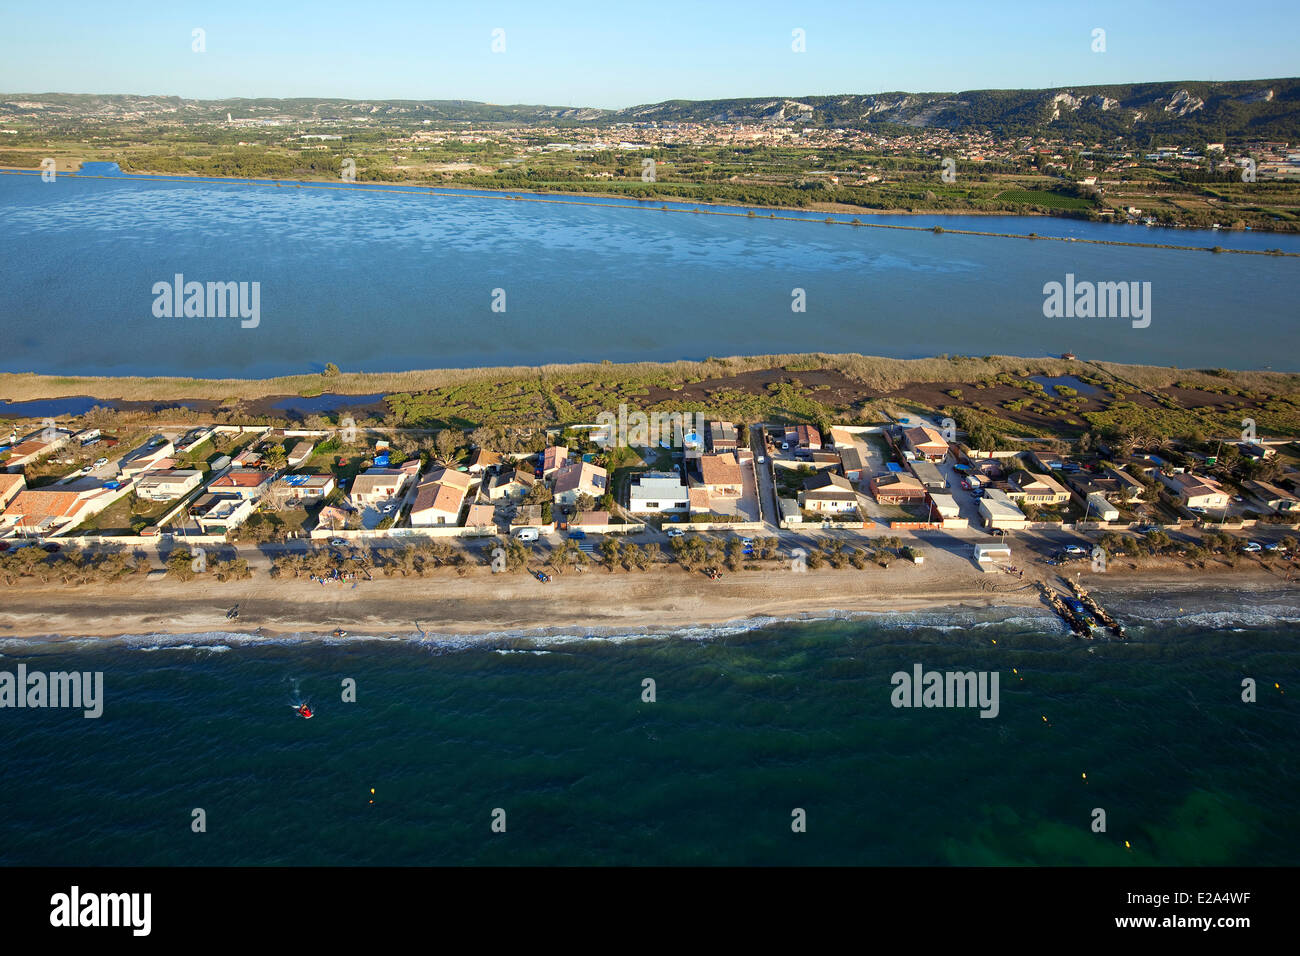 France, Bouches du Rhone, Marignane, Jai beach between the pond Bolmon (second place) and the Etang de Berre (aerial - Stock Image